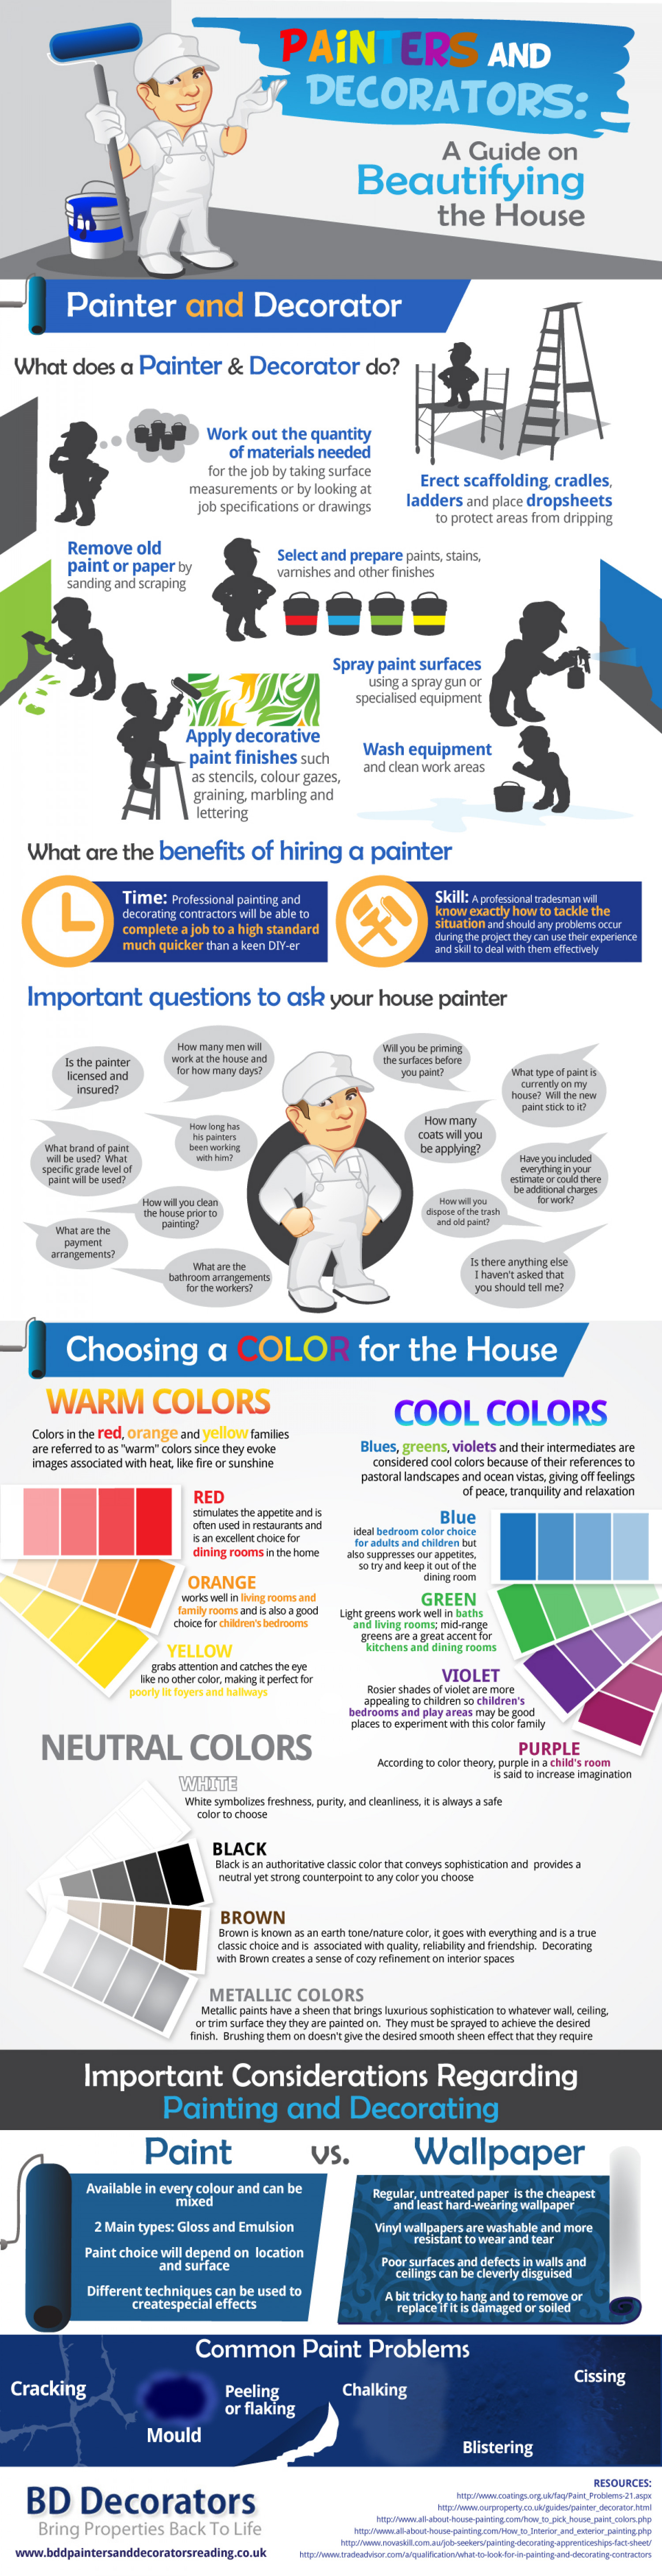 Painters and Decorators: A Guide on Beautifying the House Infographic